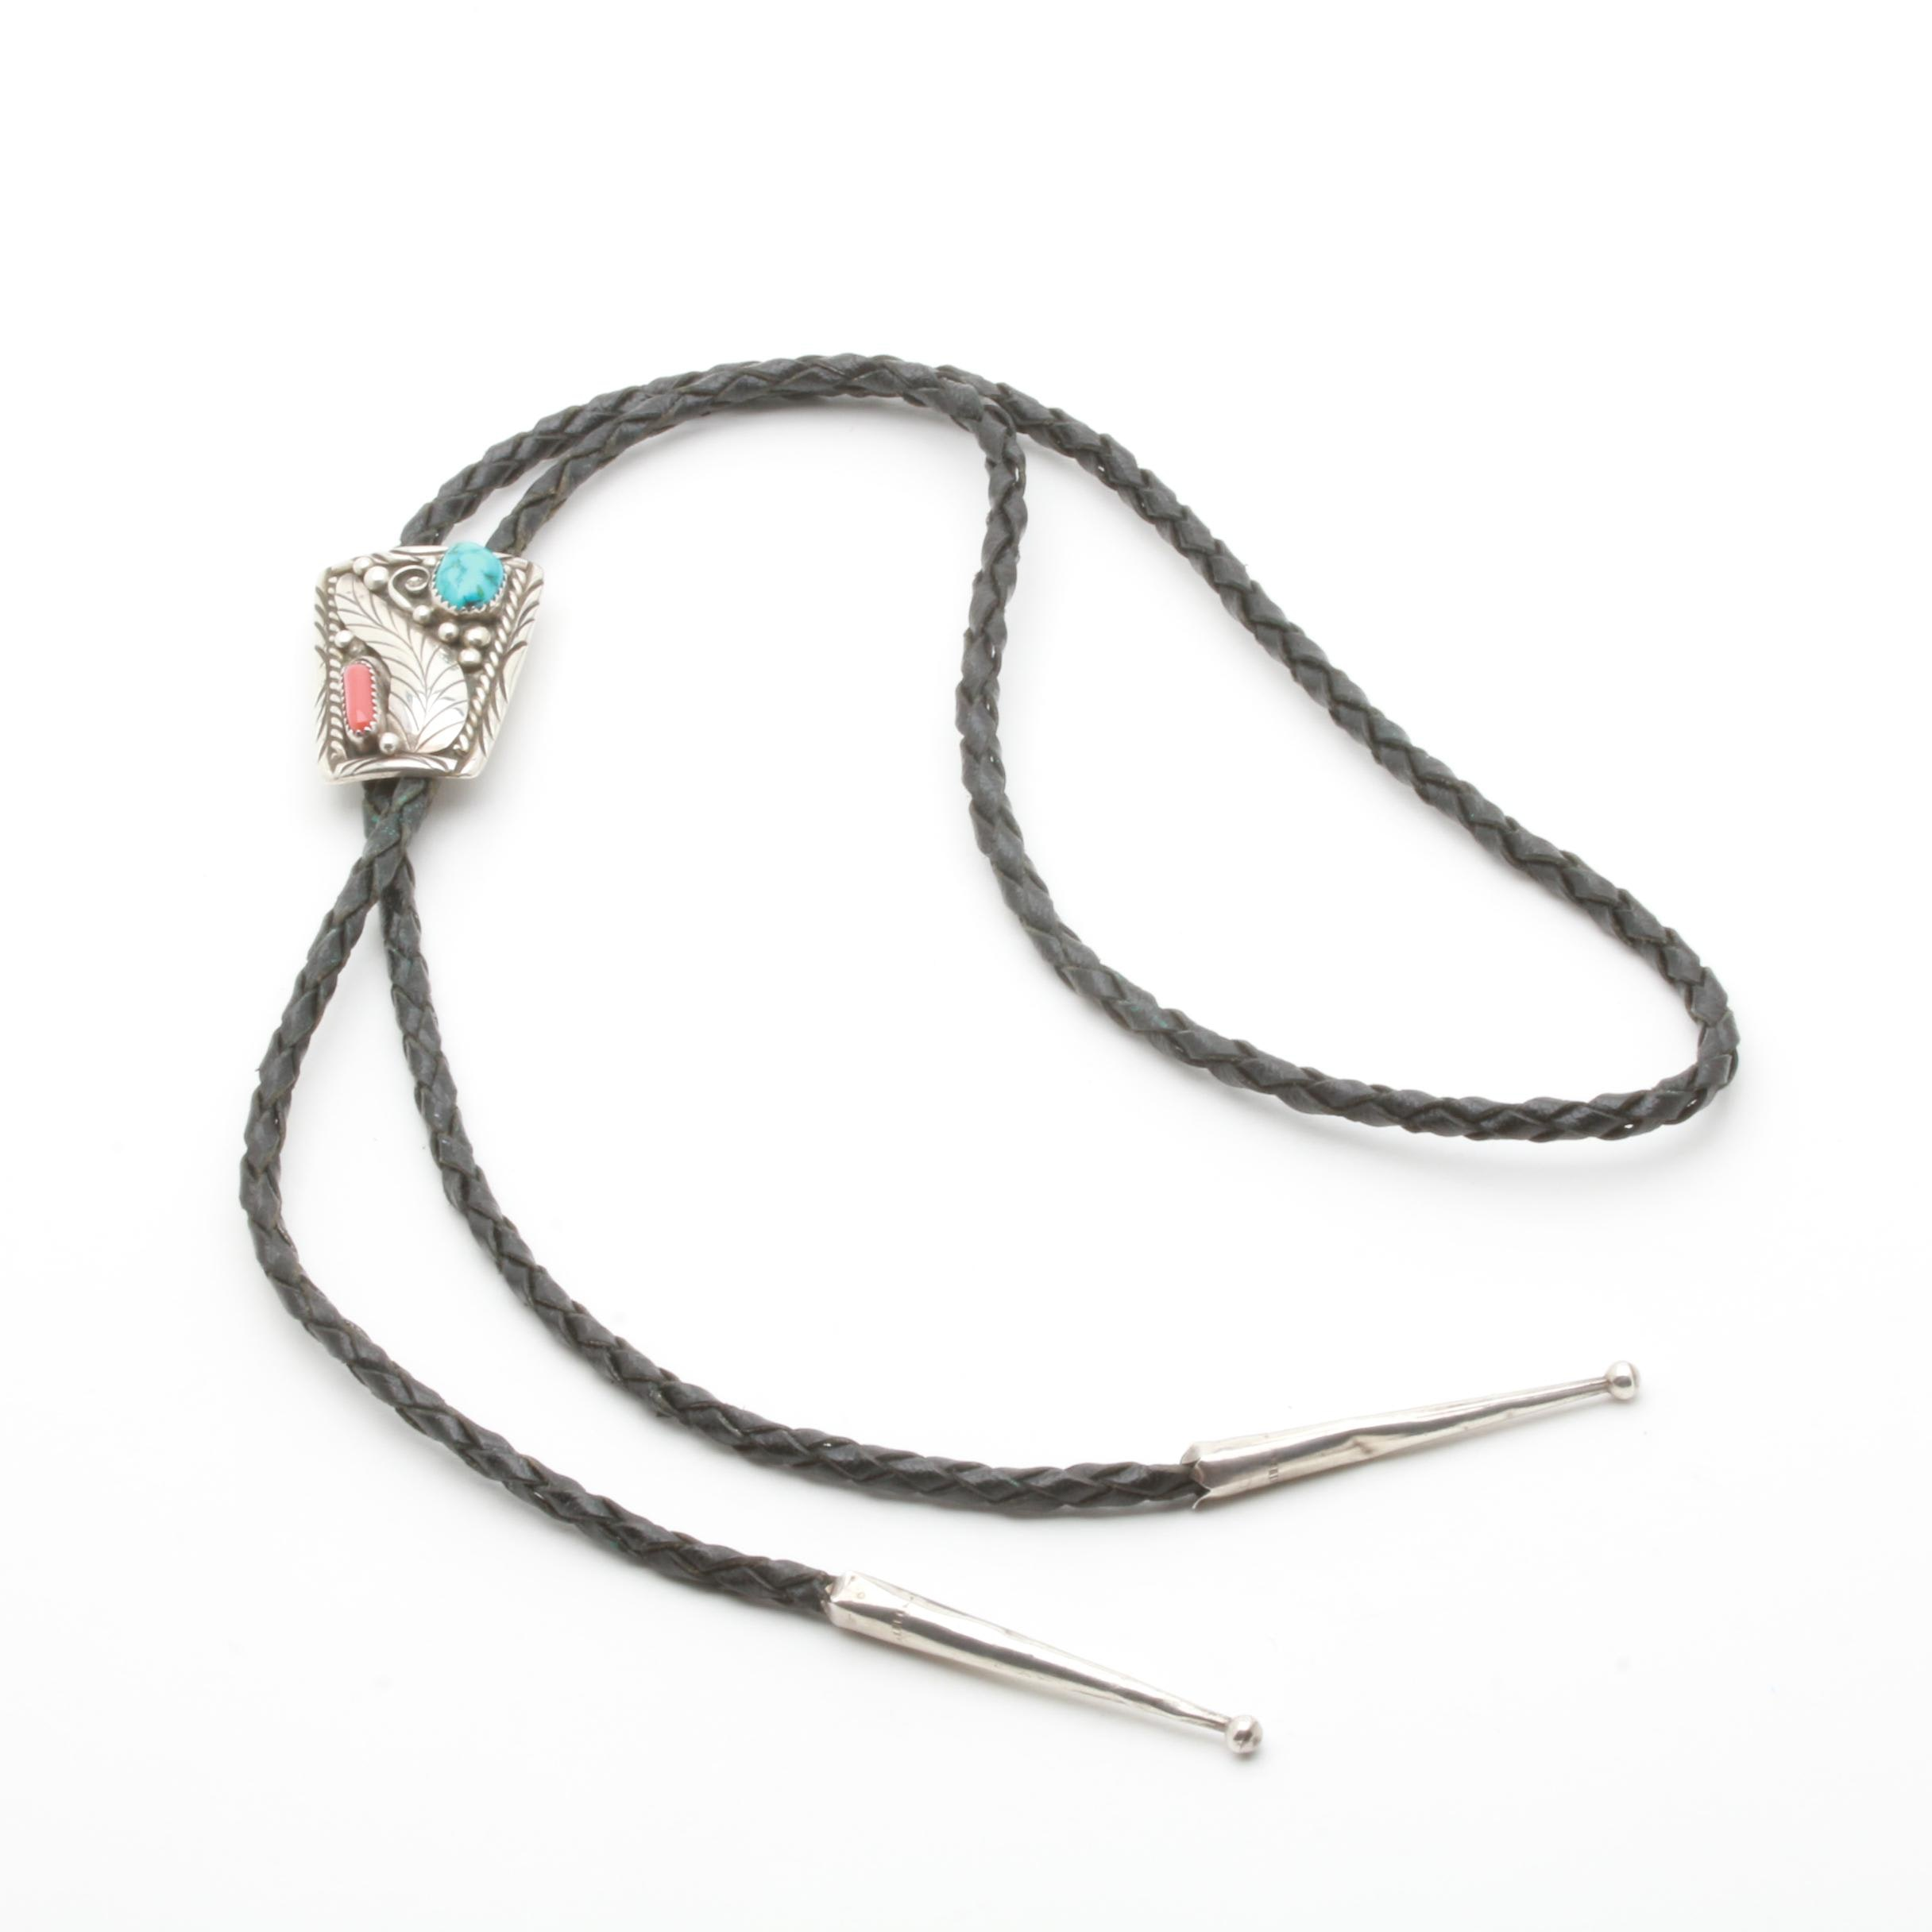 Southwestern Style Sterling Silver Turquoise and Coral Bolo Tie